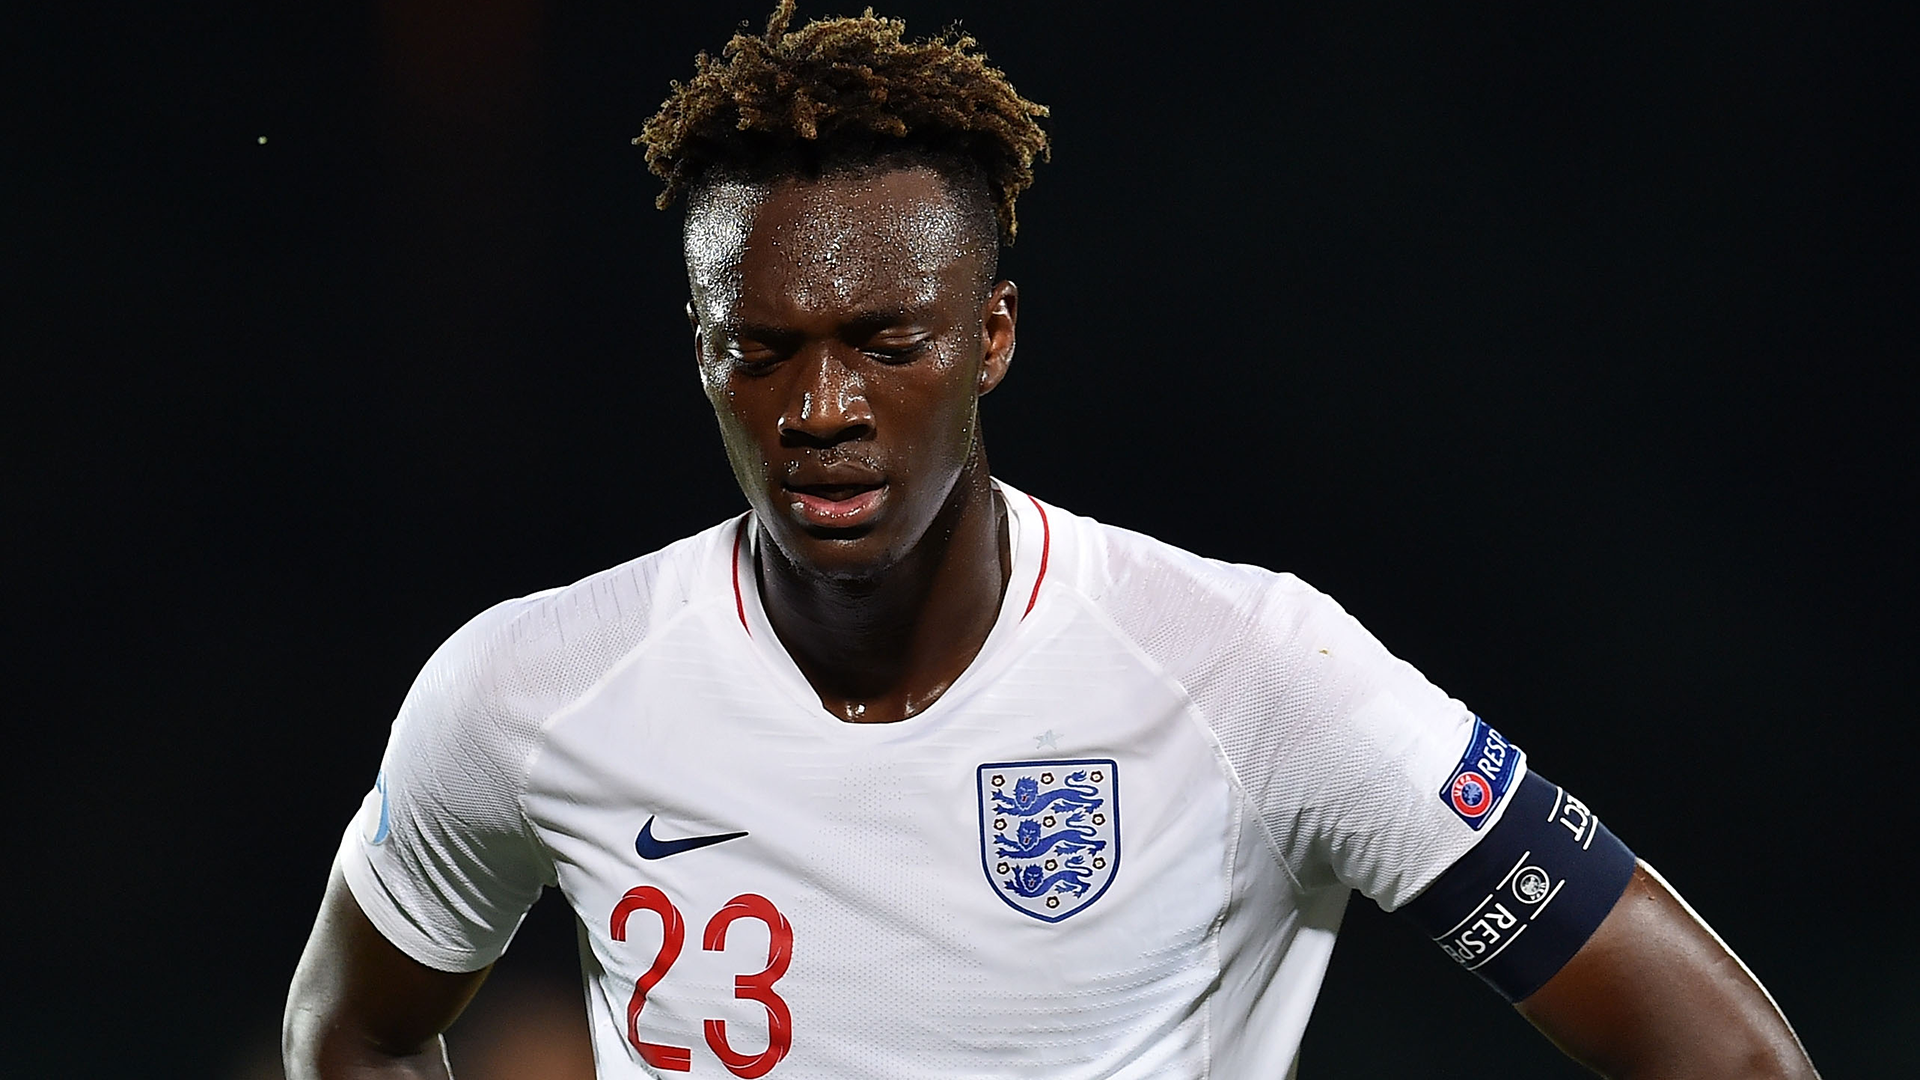 Tammy Abraham eligibility: Will he play for England or Nigeria in international football?